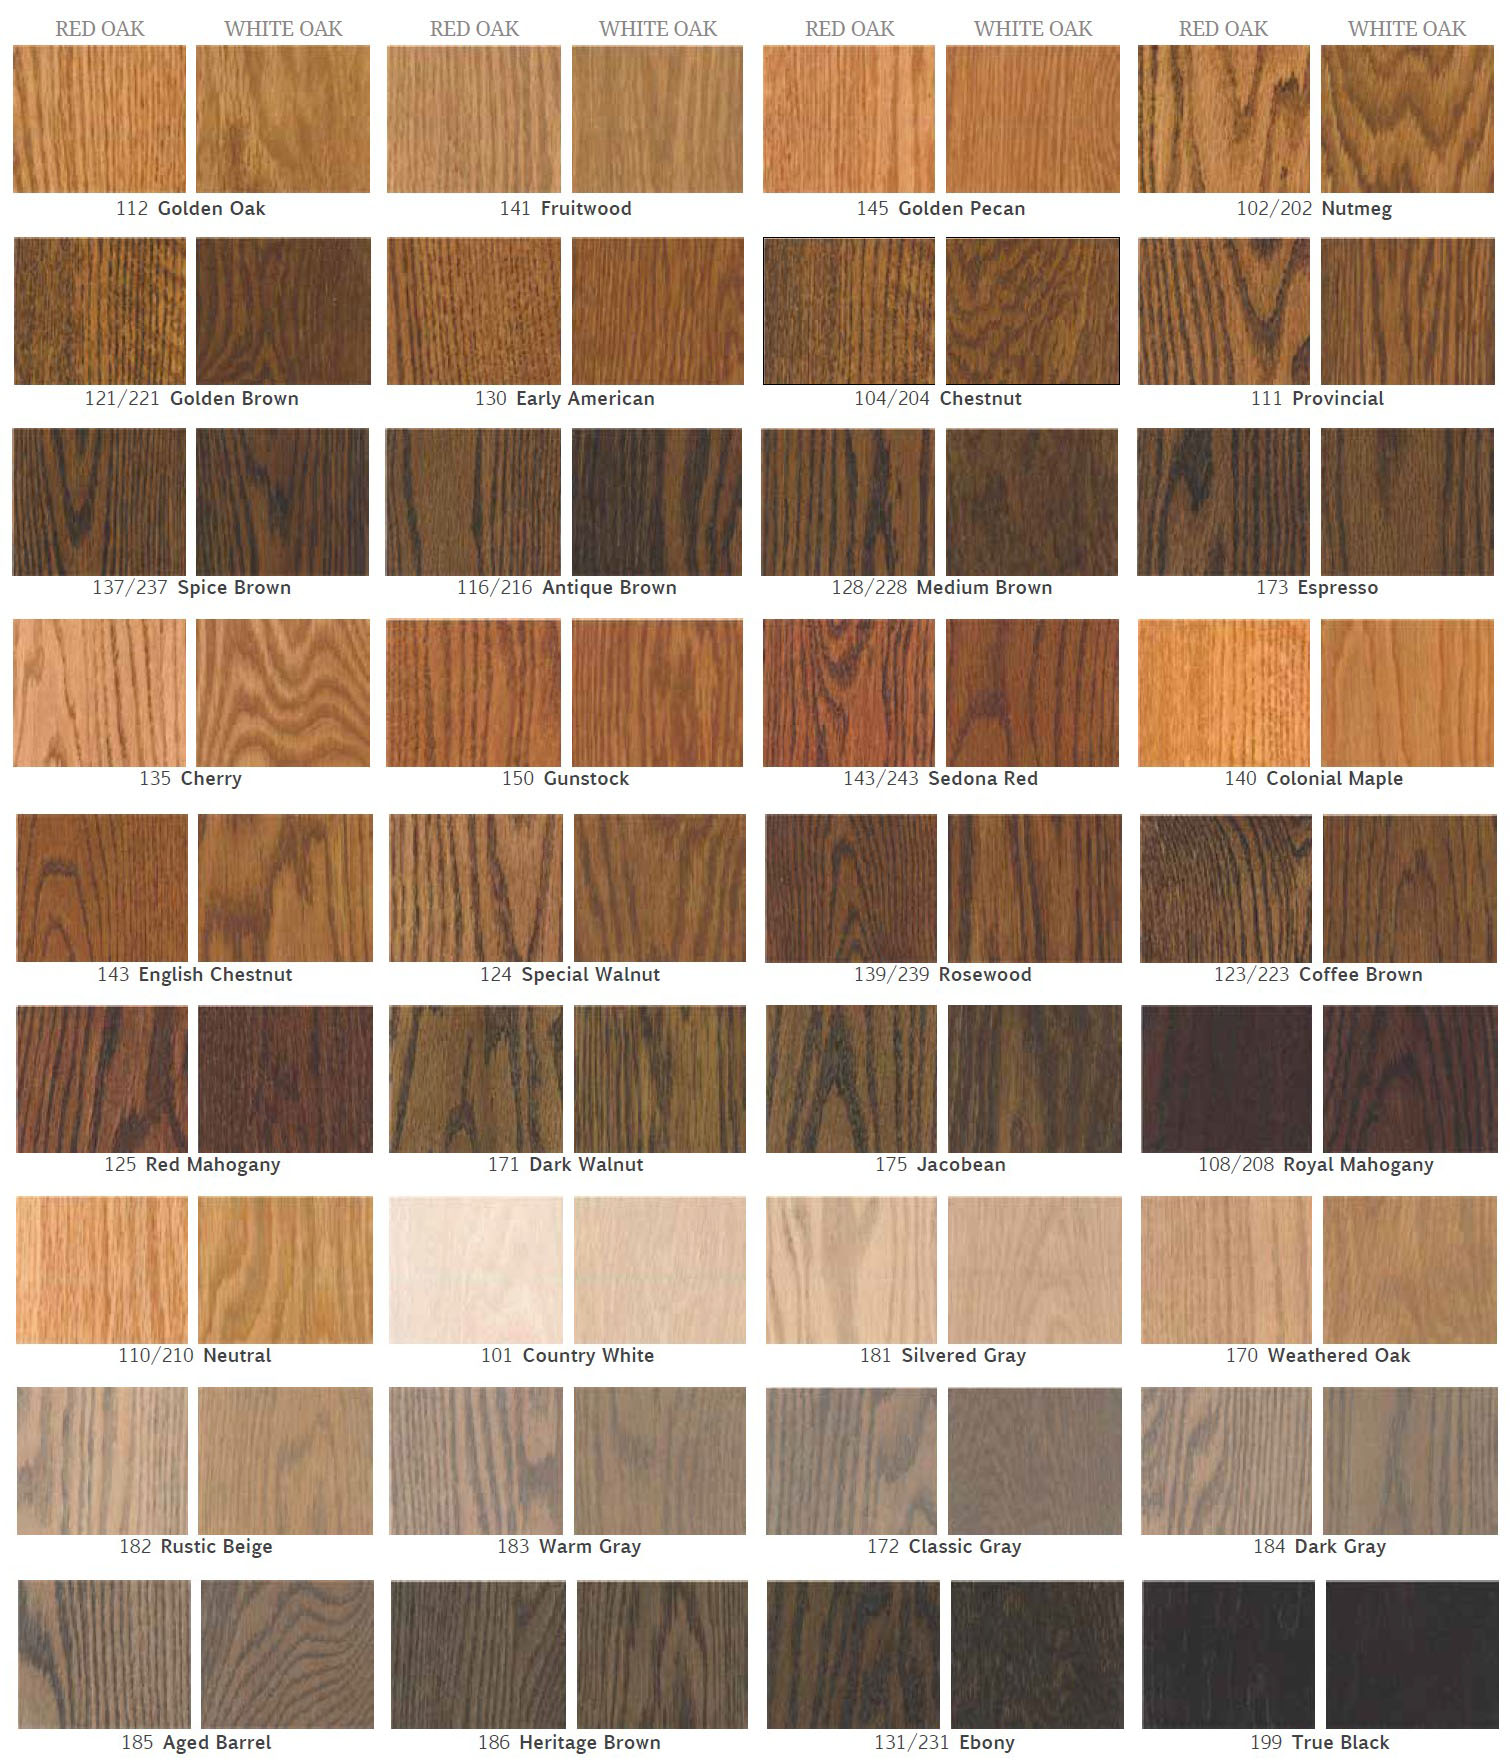 Hardwood flooring stain colors from DuraSeal